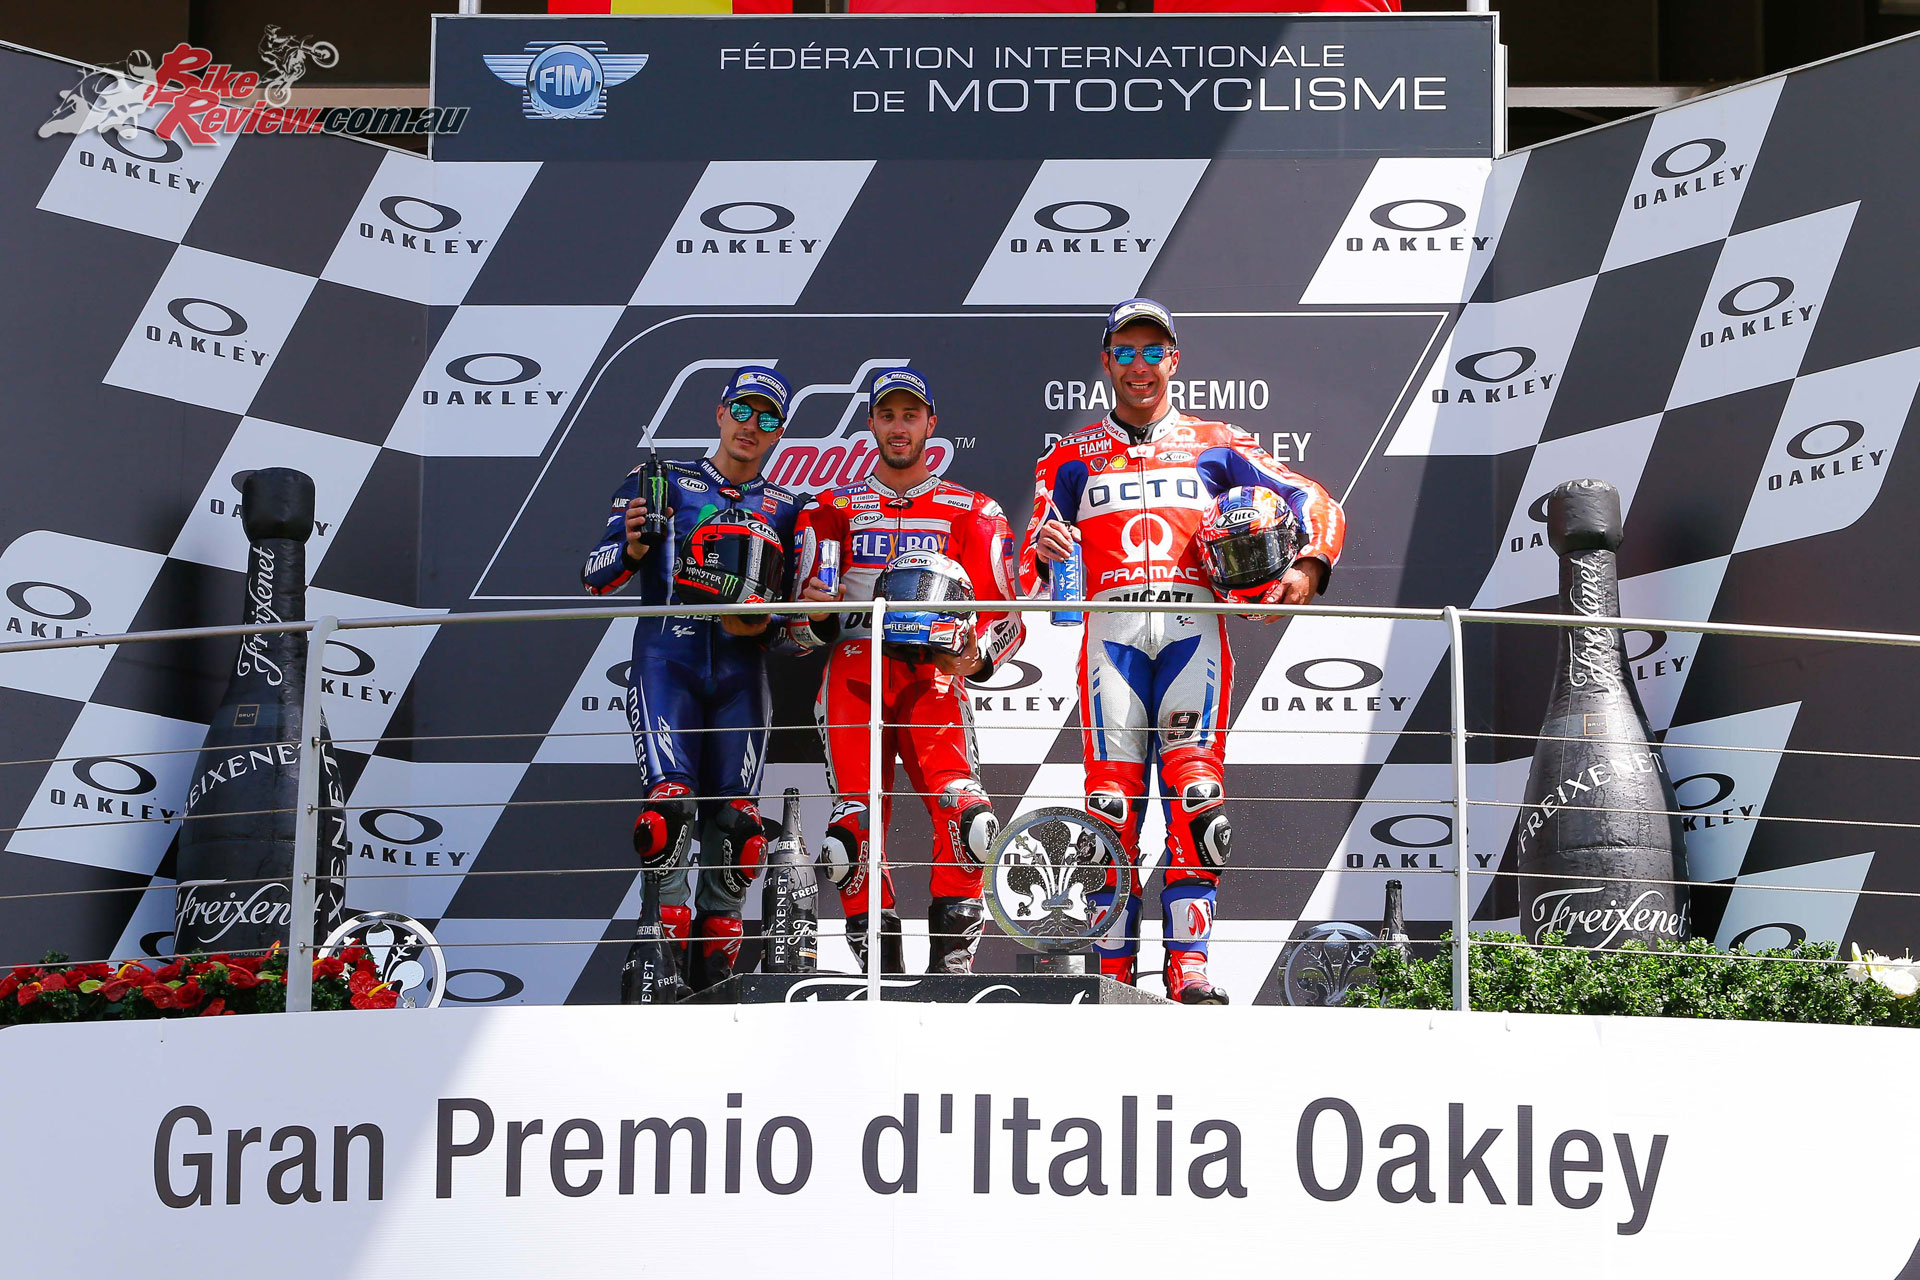 Italy GP Race: Magnificent Dovi!